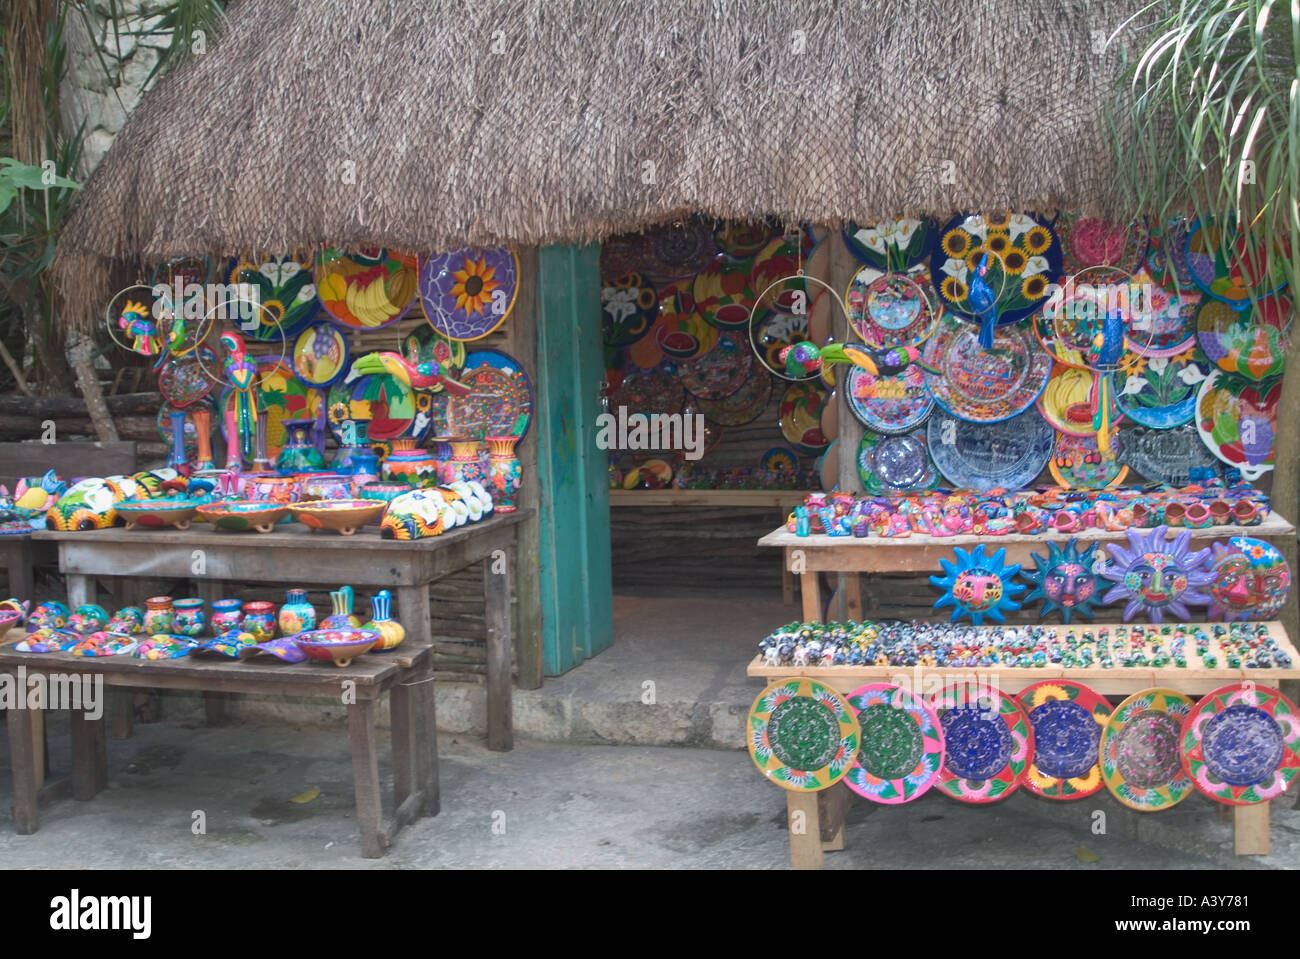 front of mayan wooden hut displaying colour in artwork and pottery xcaret park riviera maya mexico